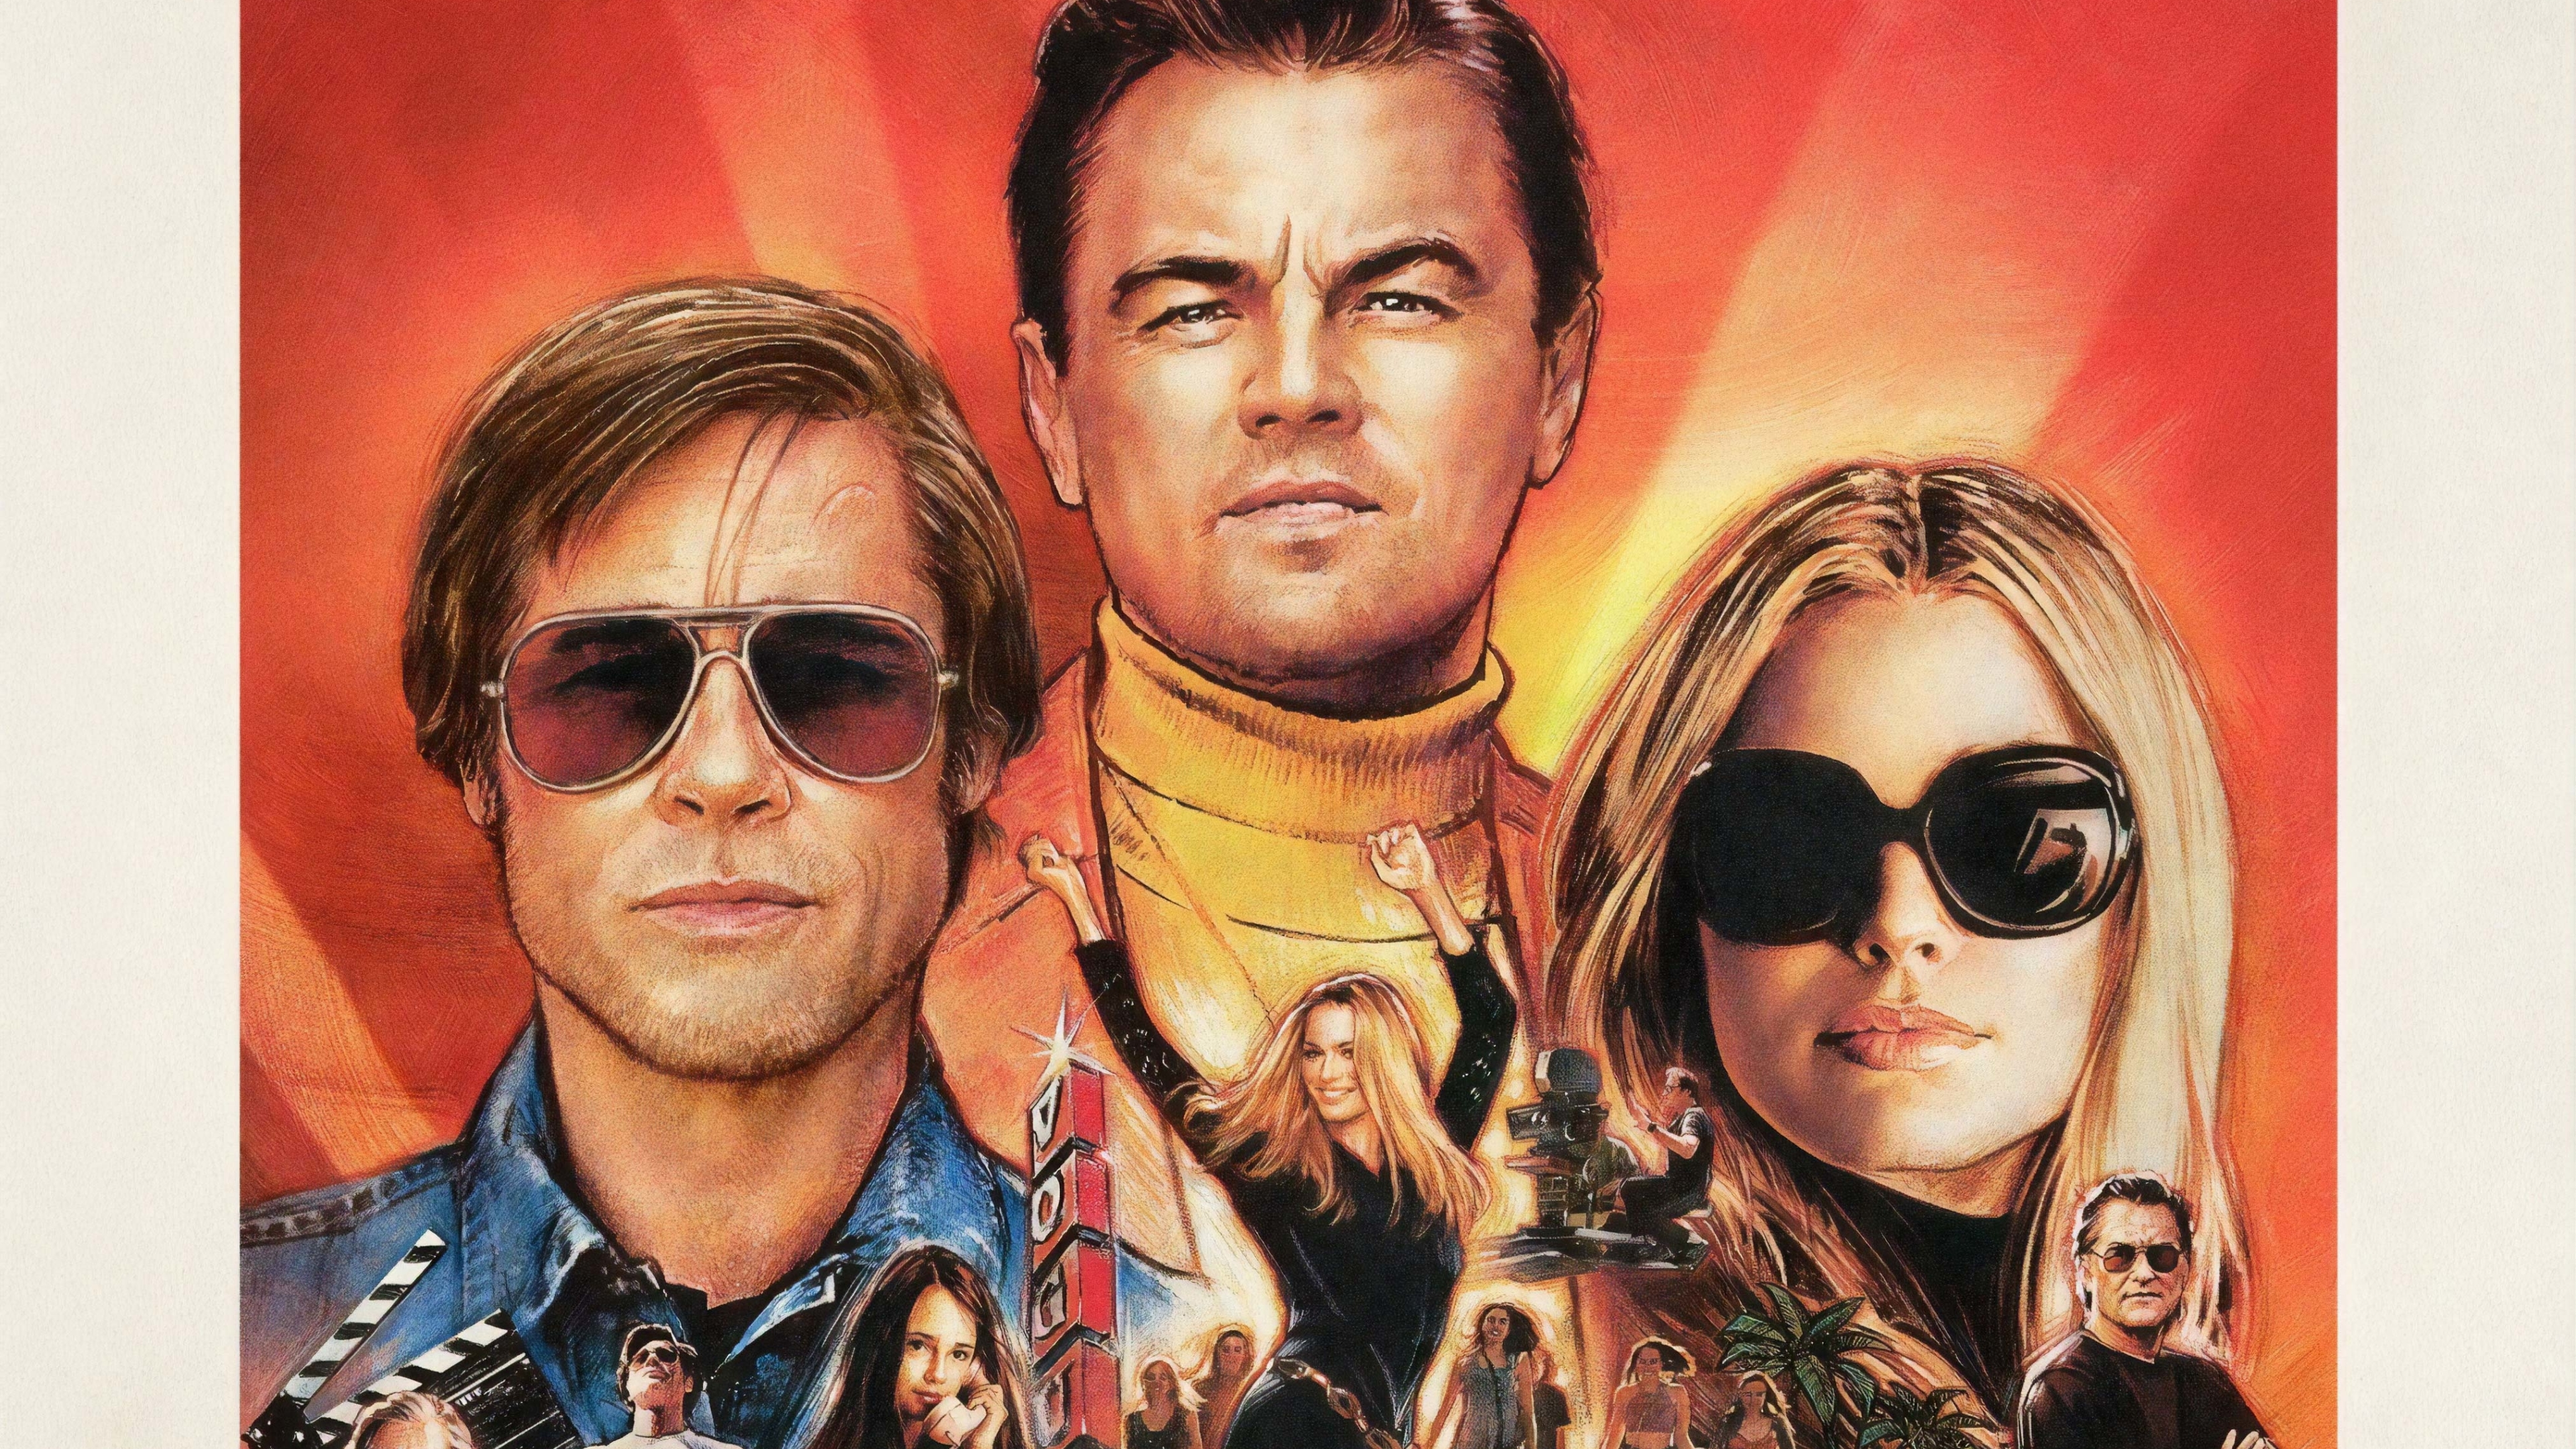 3840x2160 Once Upon A Time In Hollywood 4k Wallpaper Hd Movies 4k